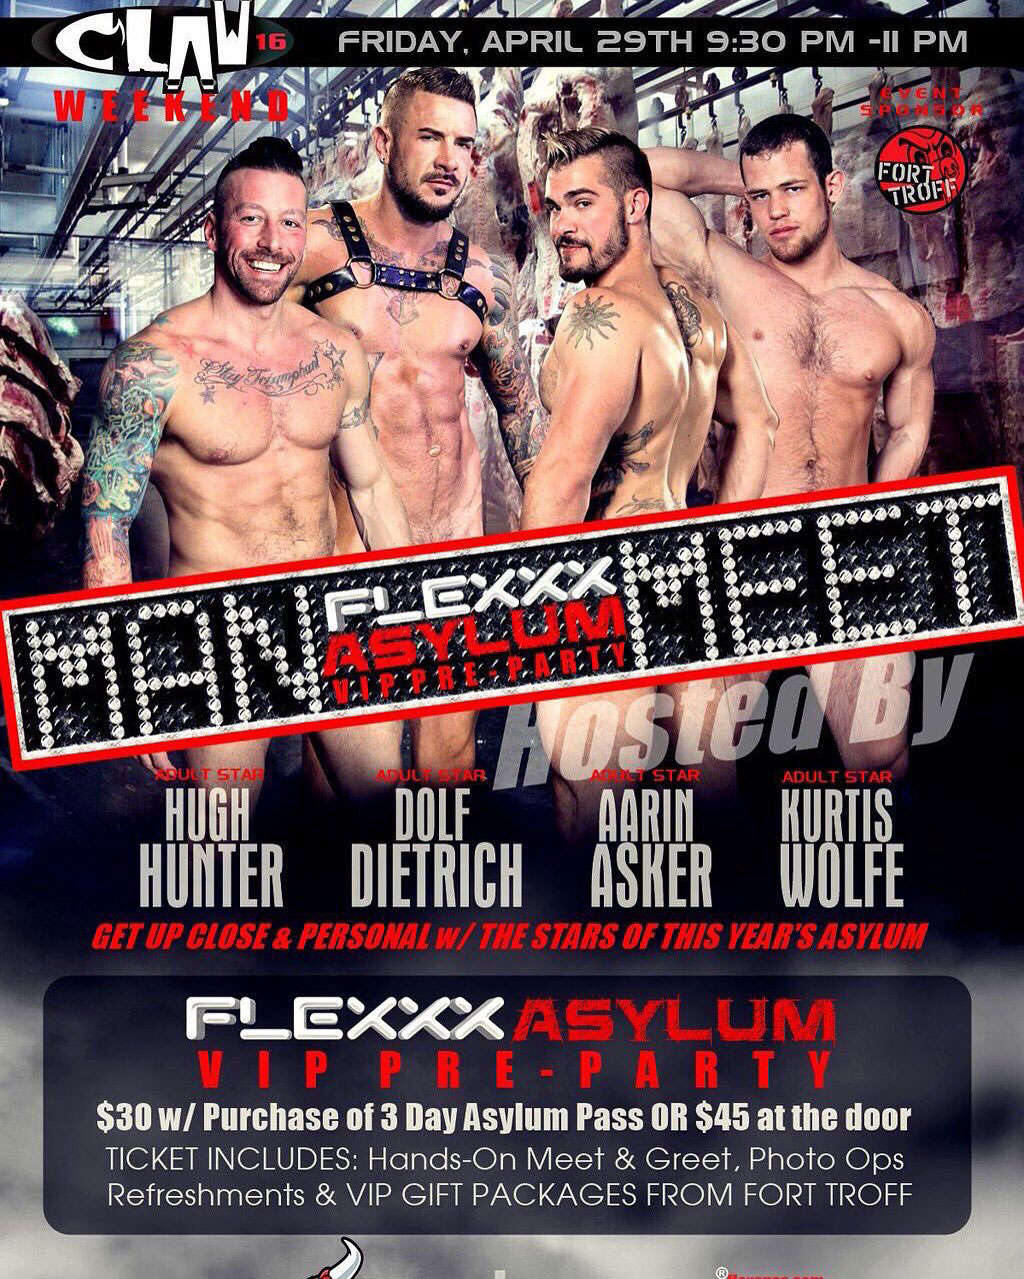 Hugh Hunter & Dolf Dietrich at Flexx party